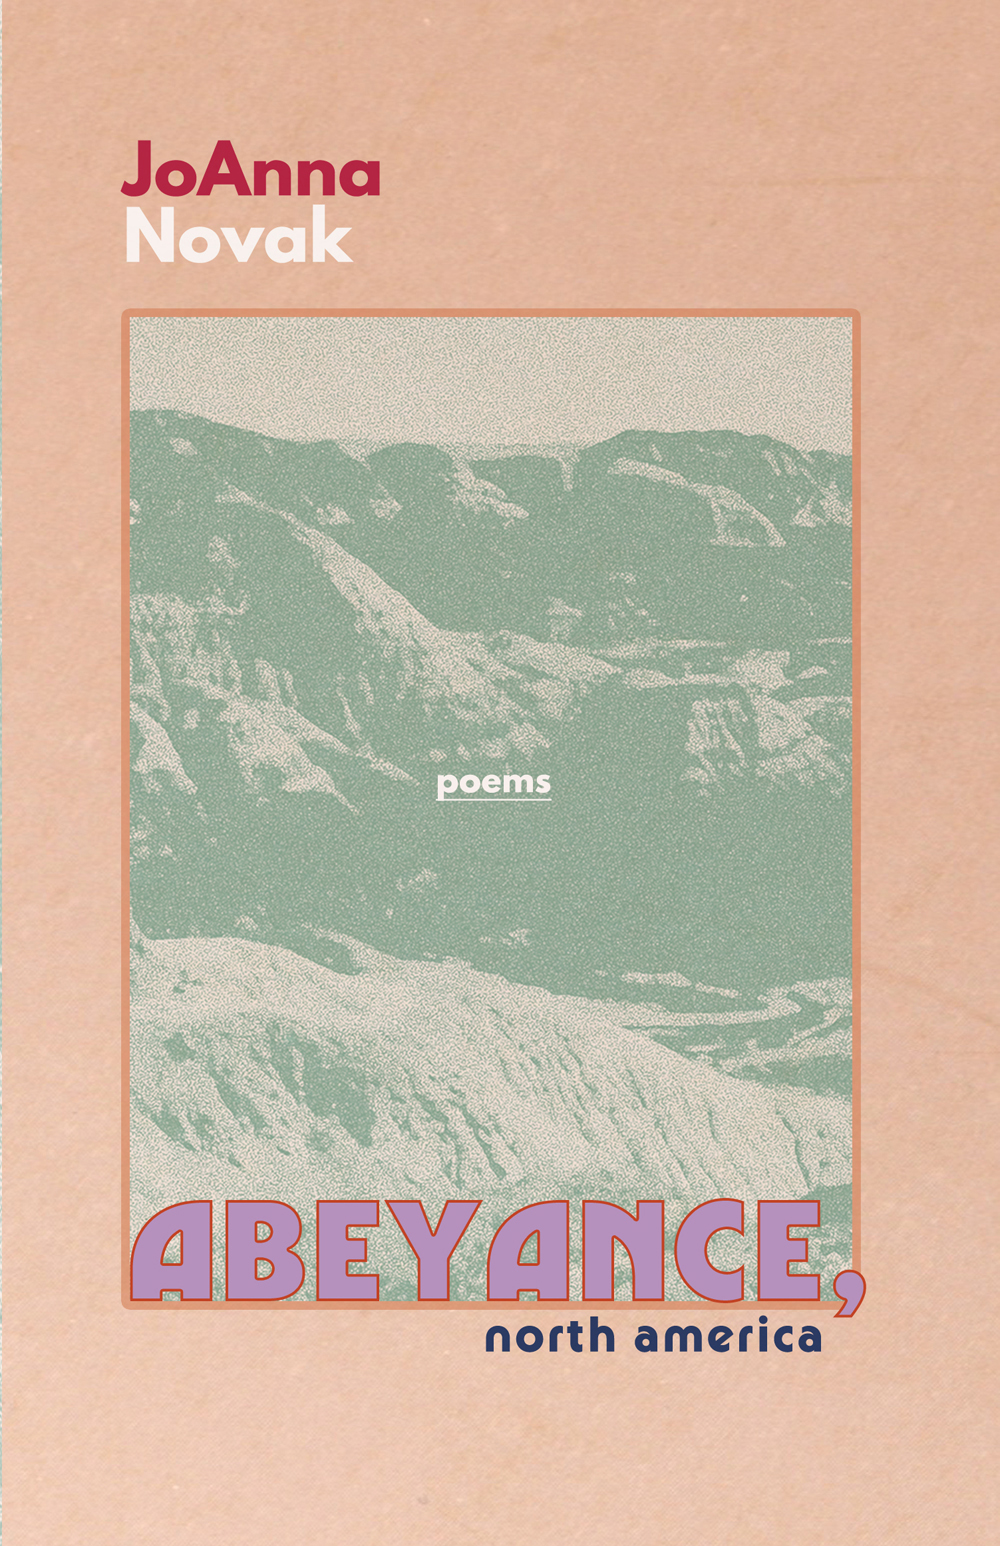 ABEYANCE, NORTH AMERICA